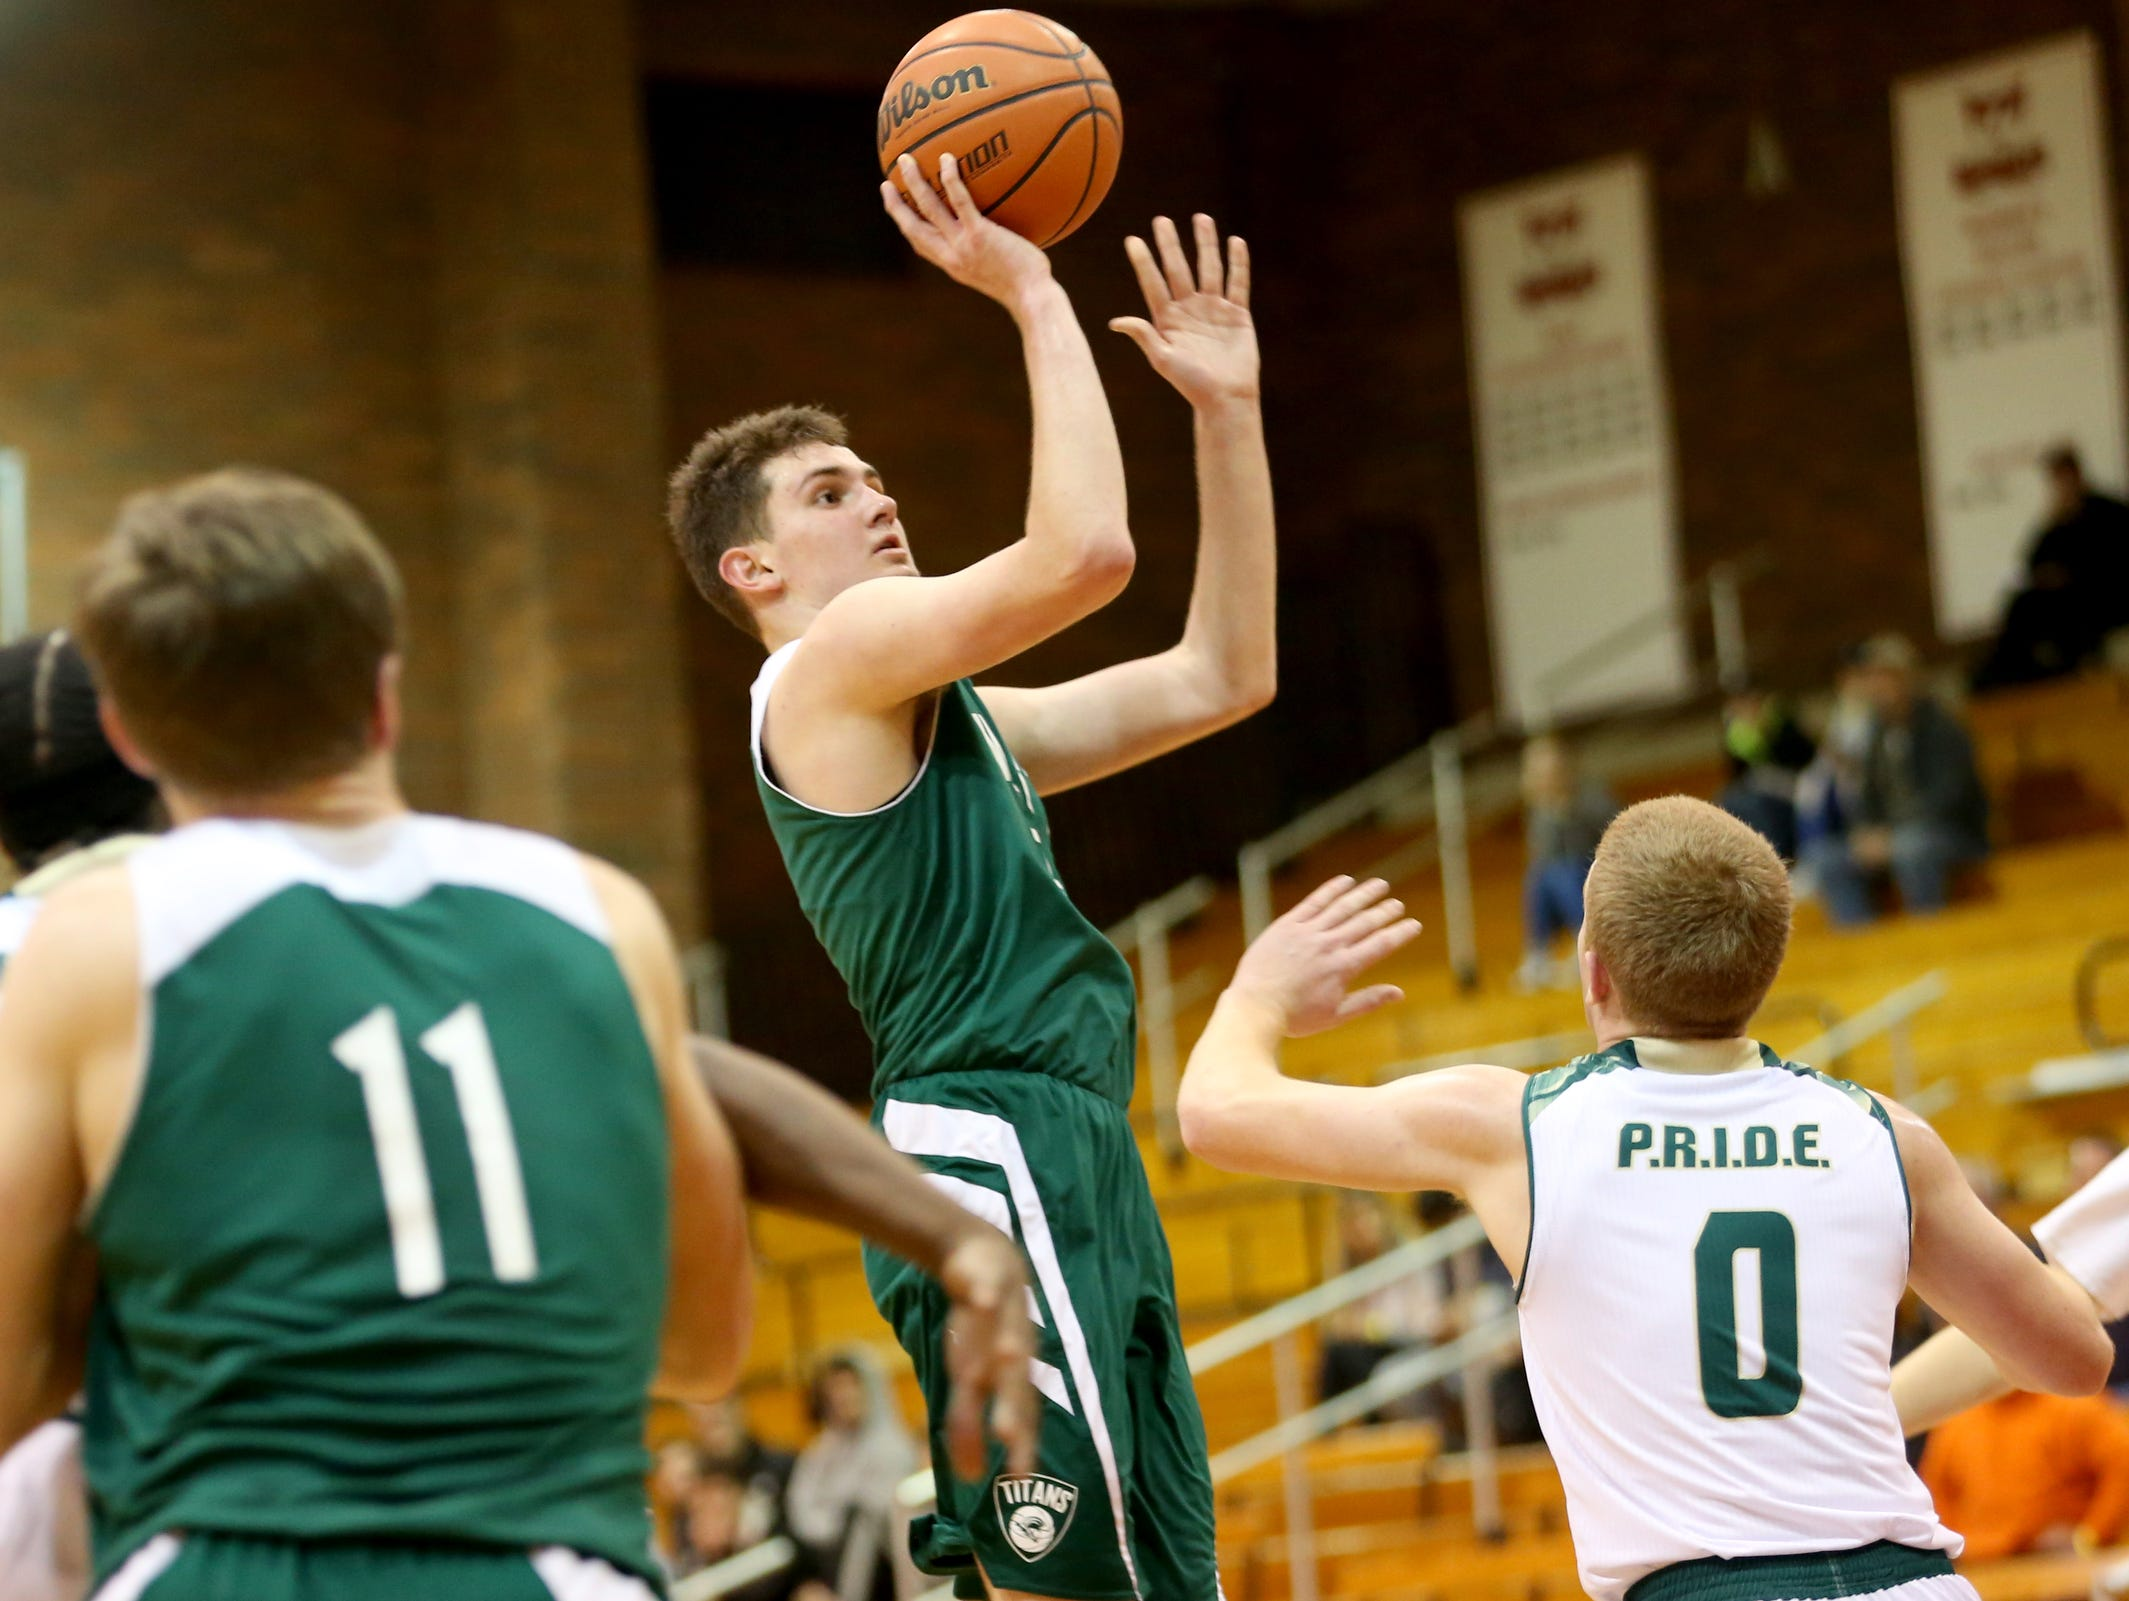 West Salem's Kyle Greeley (5) shoots in the West Salem vs. Evergreen boy's basketball game on the first day of the Capitol City Classic tournament at Willamette University in Salem on Wednesday, Dec. 21, 2016. West Salem won the game 72-52.